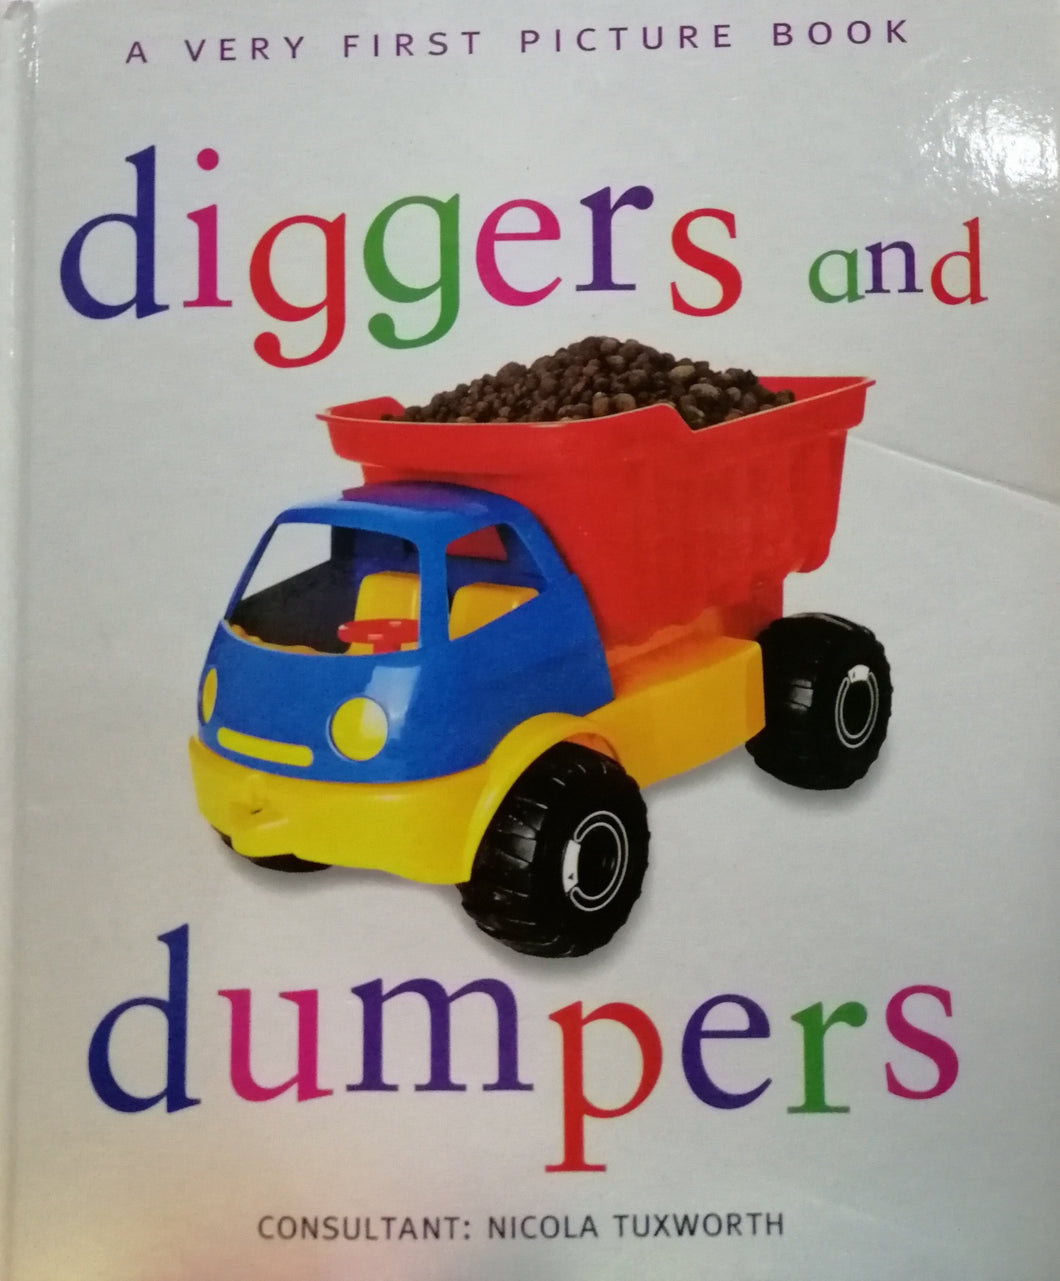 diggers and dumpers by: Nicola Tuxworth